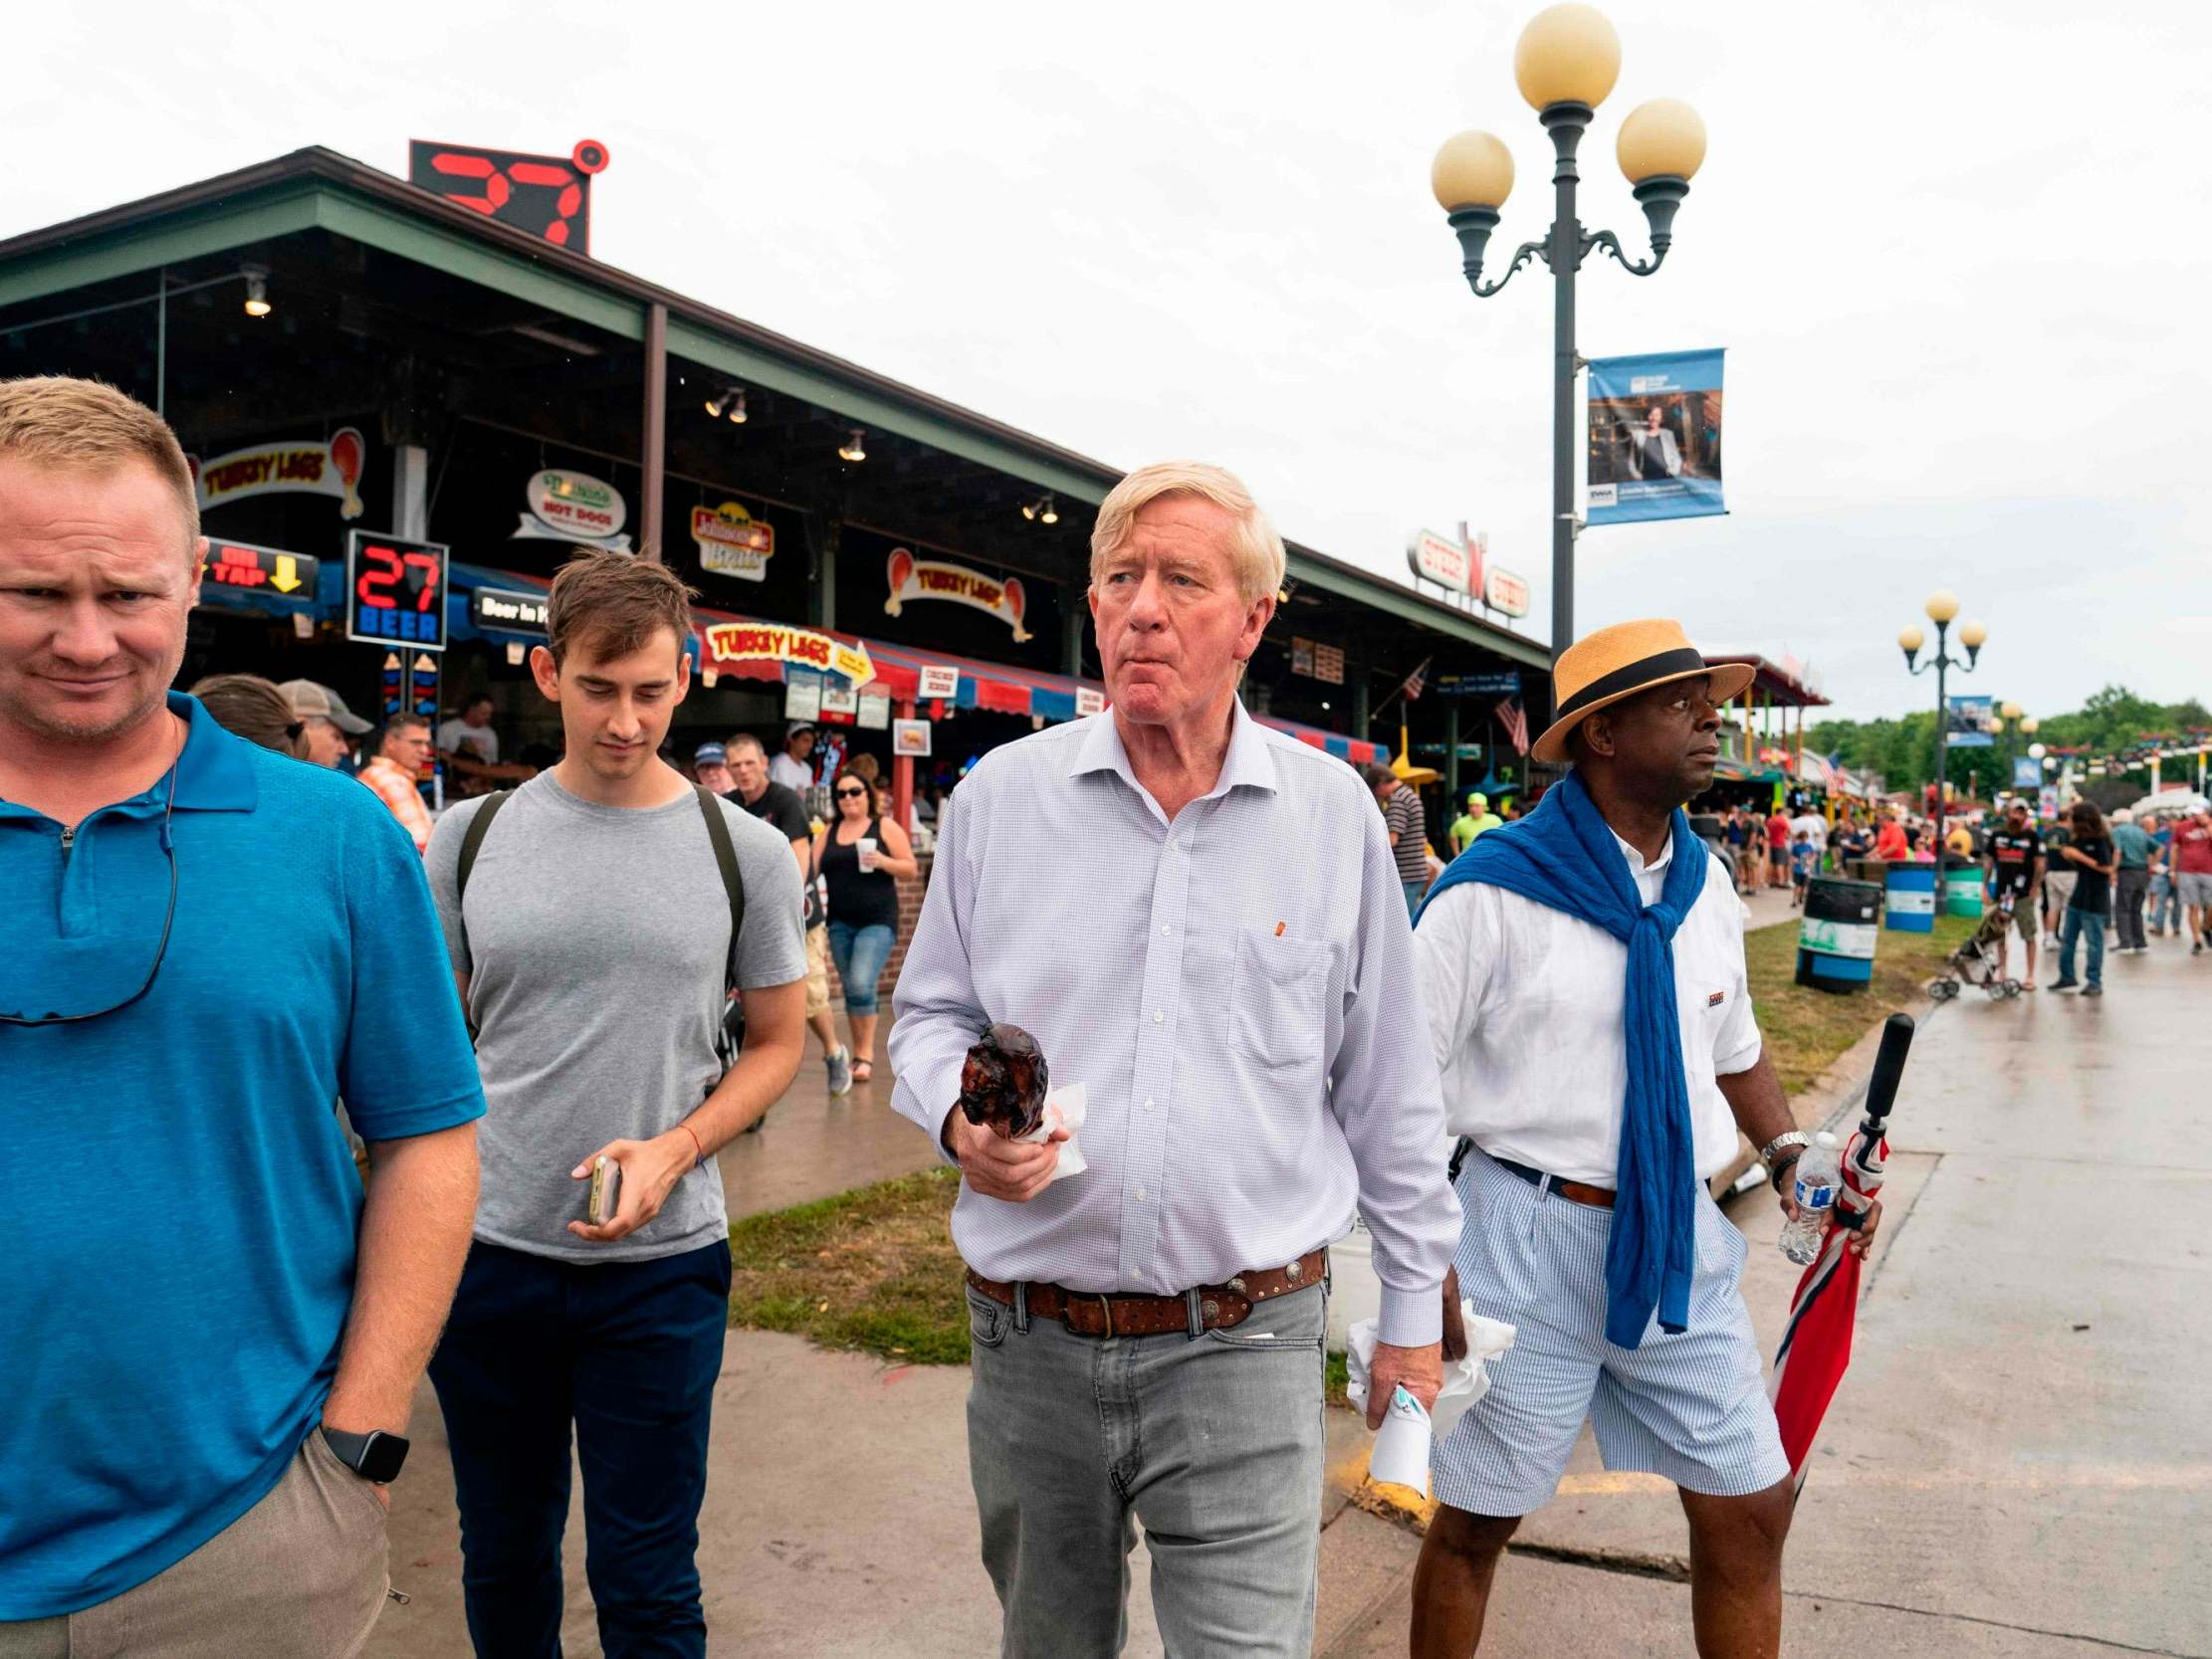 Iowa State Fair 2020 Dates.Iowa State Fair Bill Weld Trump S Long Shot 2020